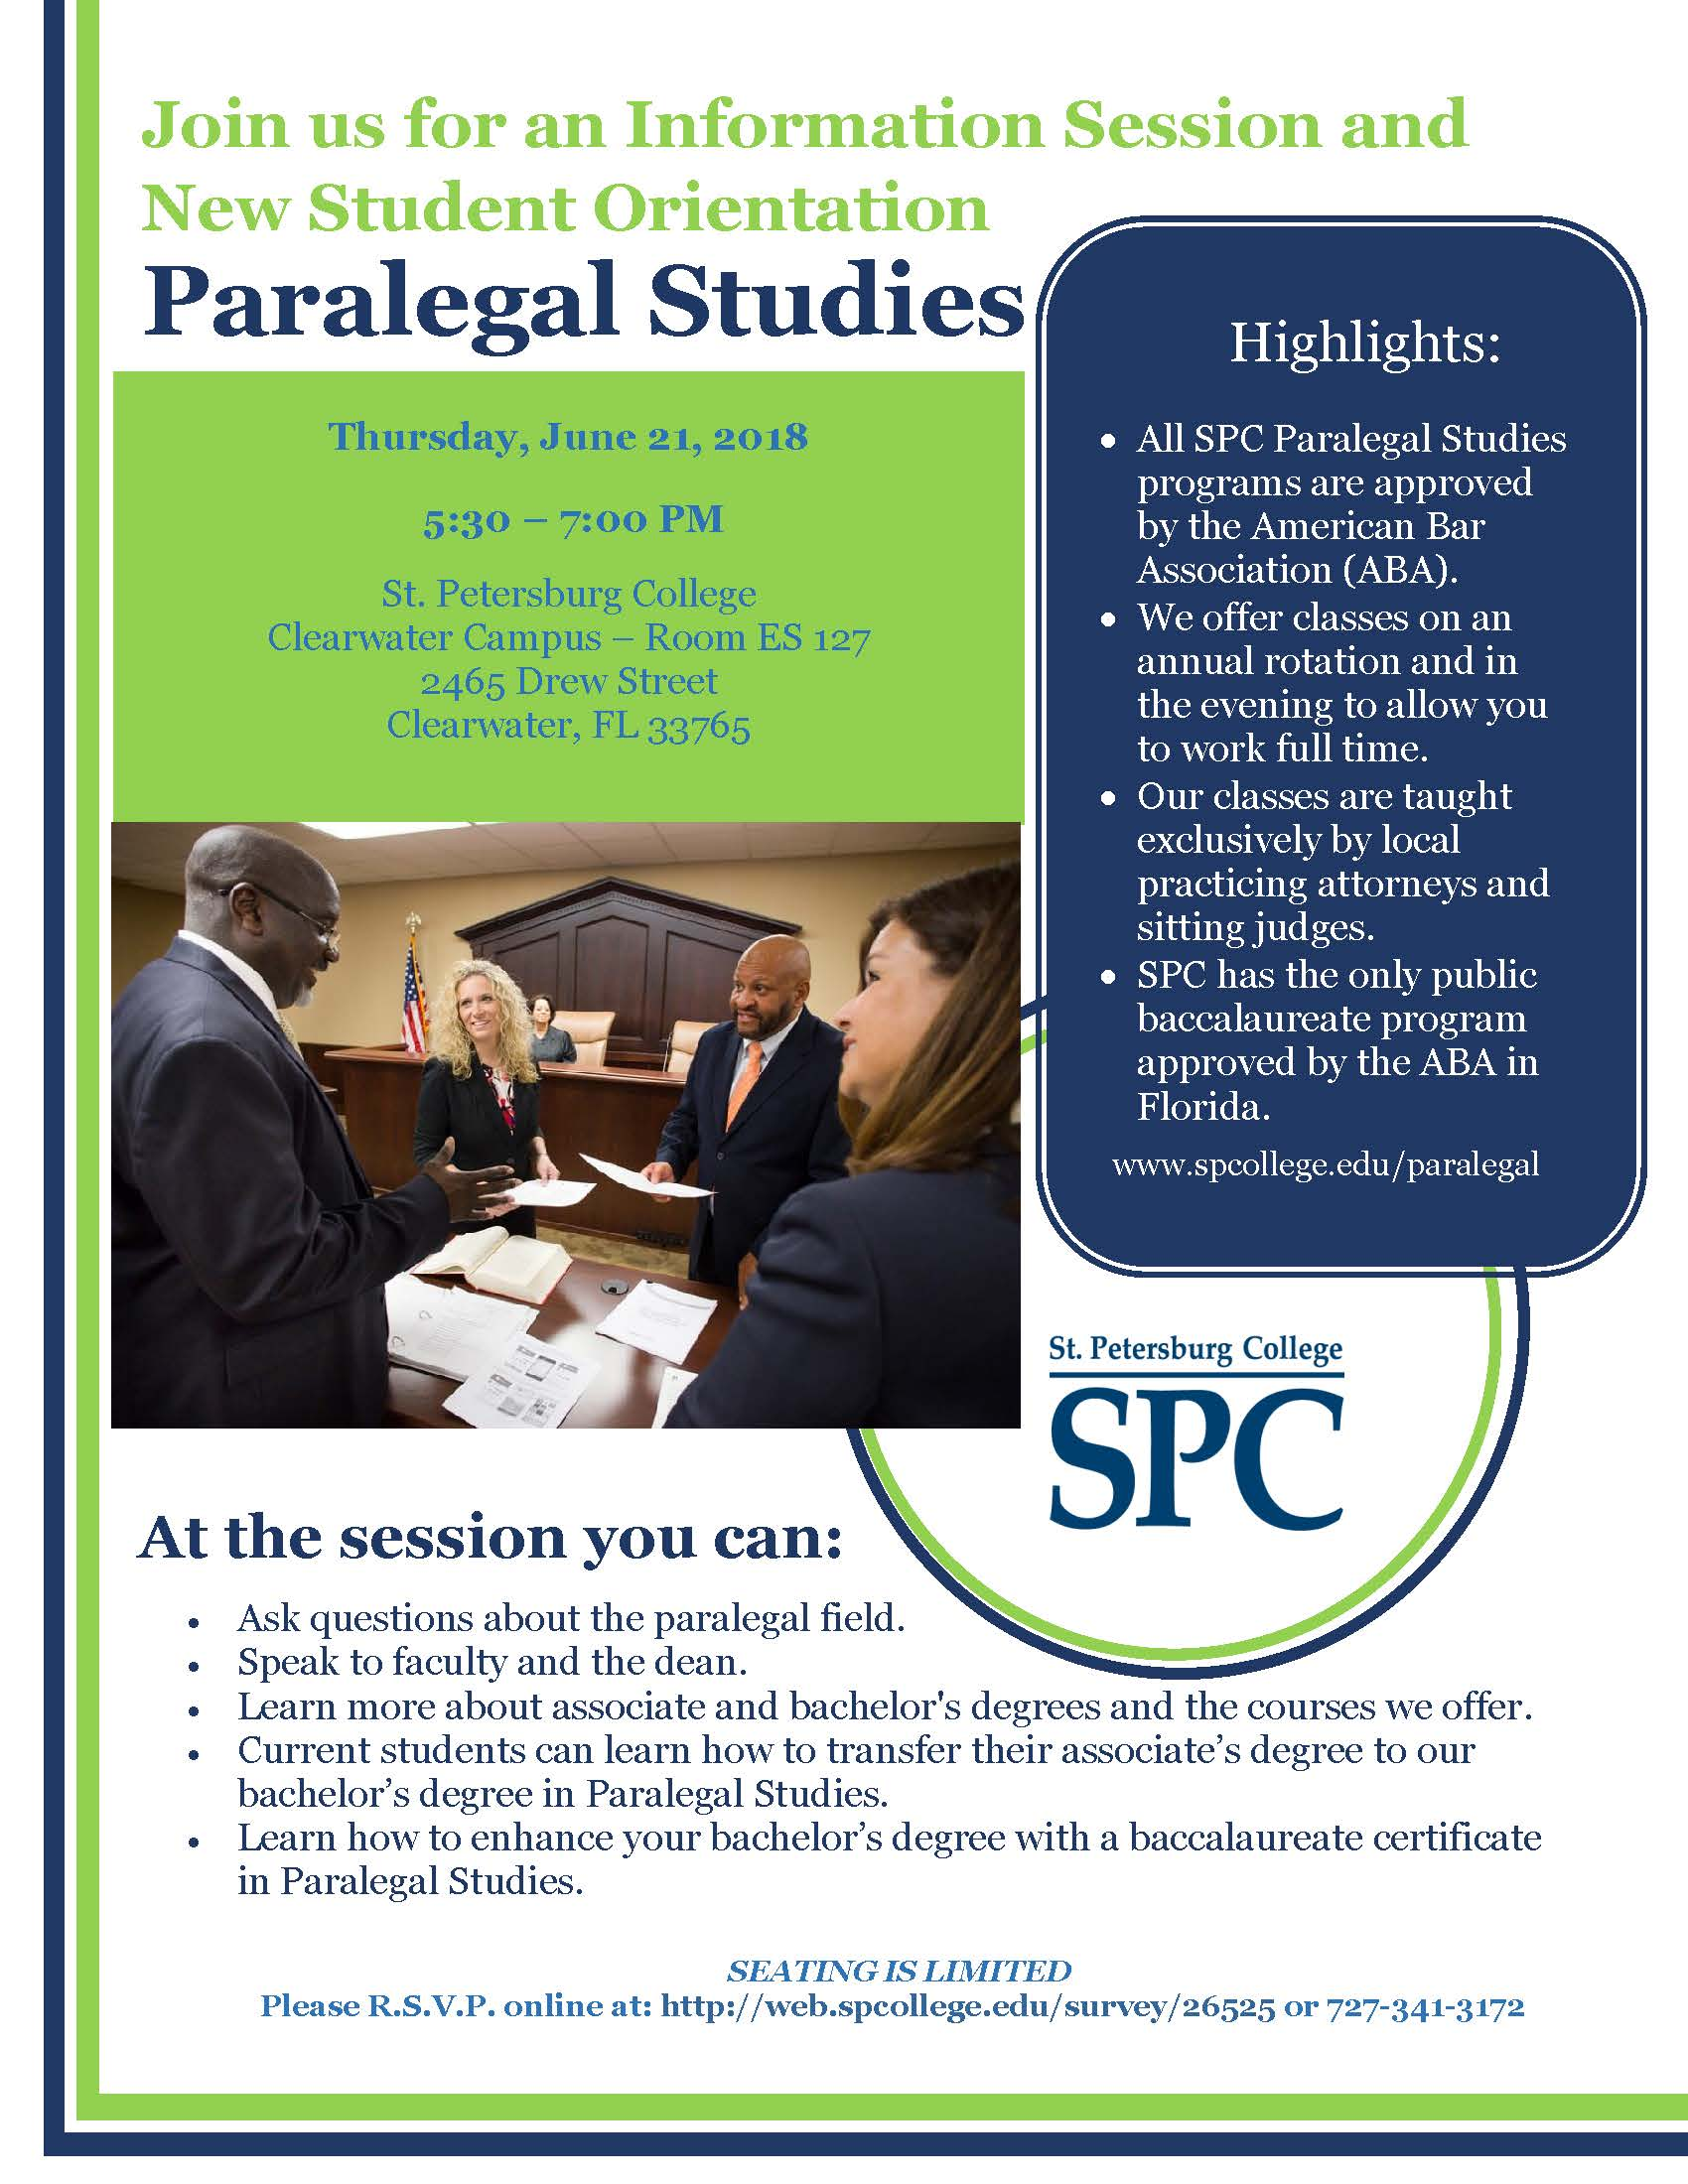 Spc Paralegal Studies Information Session Public Safety Public